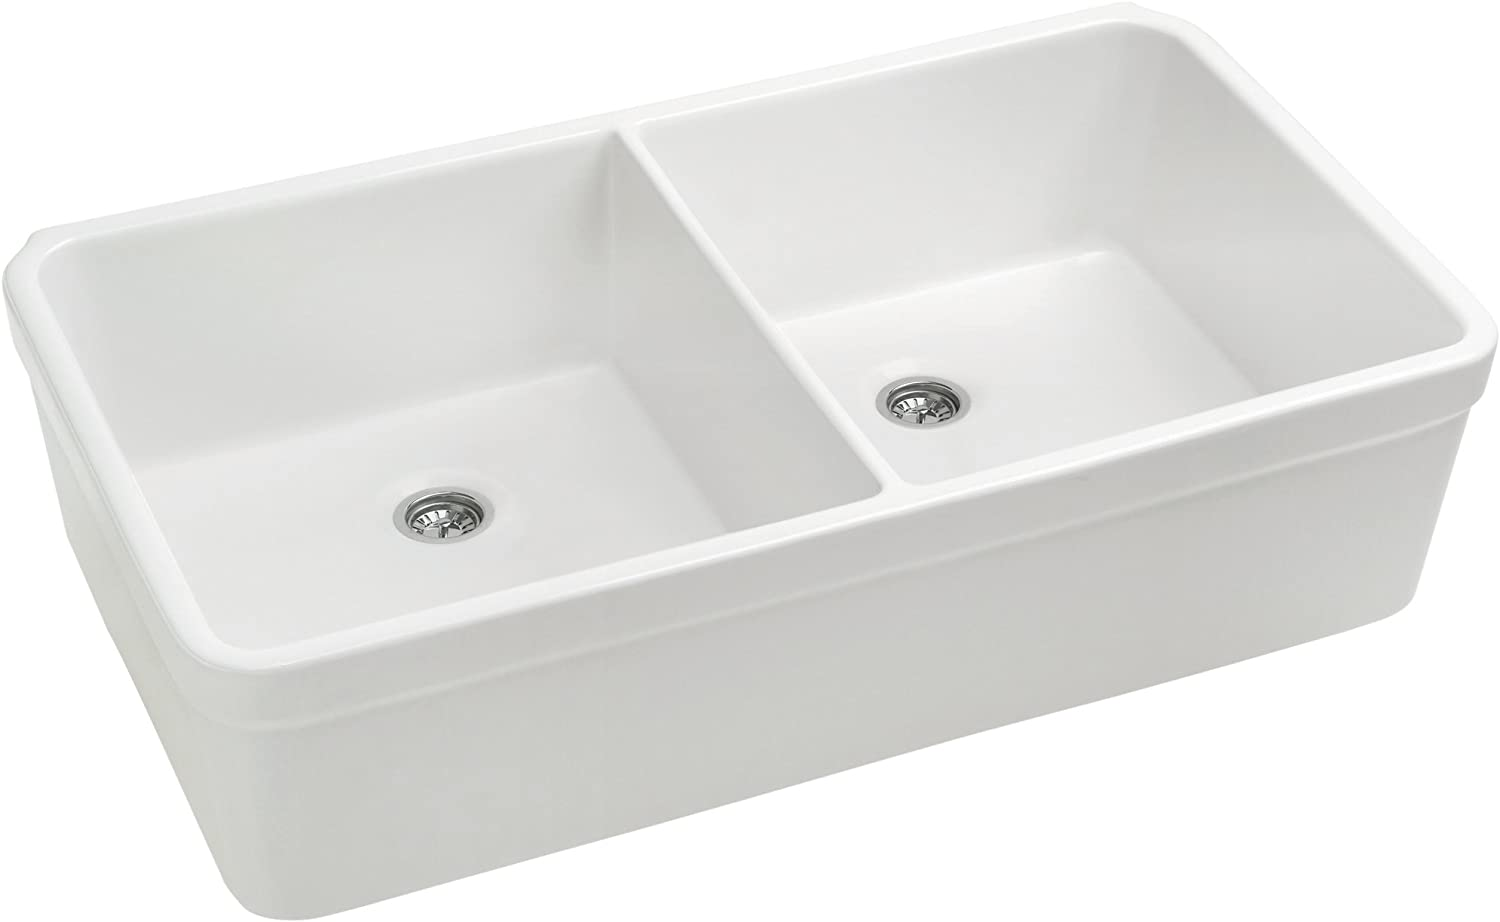 Whitehaus WHB5122 WHB5122Basichaus Non Reversible Double Bowl Fireclay Sink with Decorative 2 Lip 3 Center Drain, White